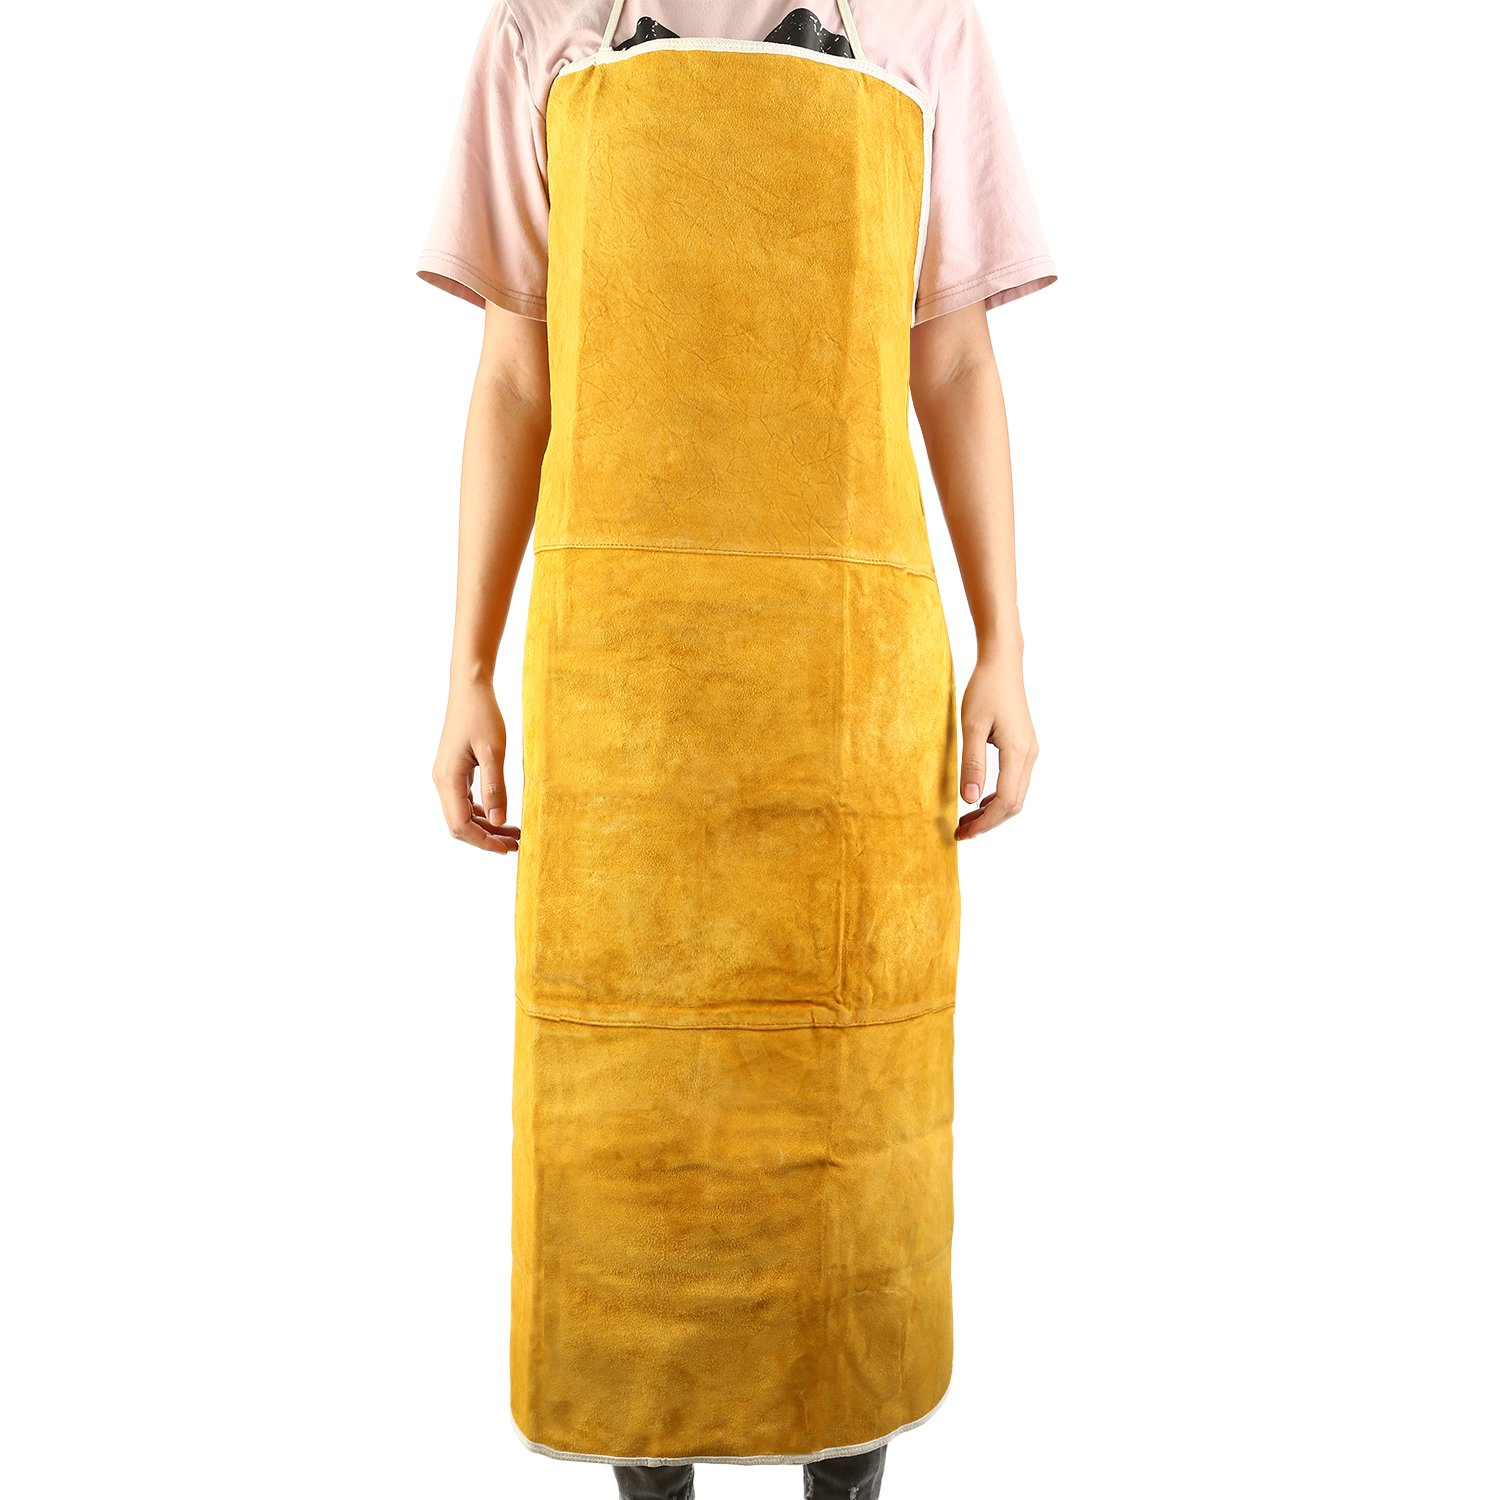 LESOLEIL Leather Welding Apron 24 'x 36 ' LESOELIL